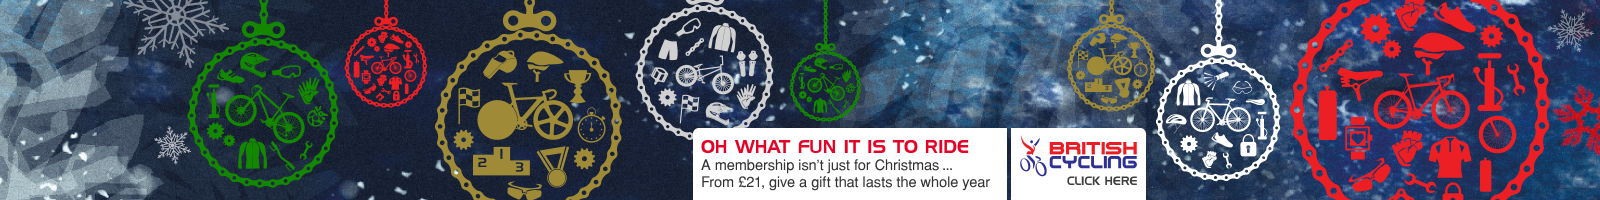 Give the gift of British Cycling membership